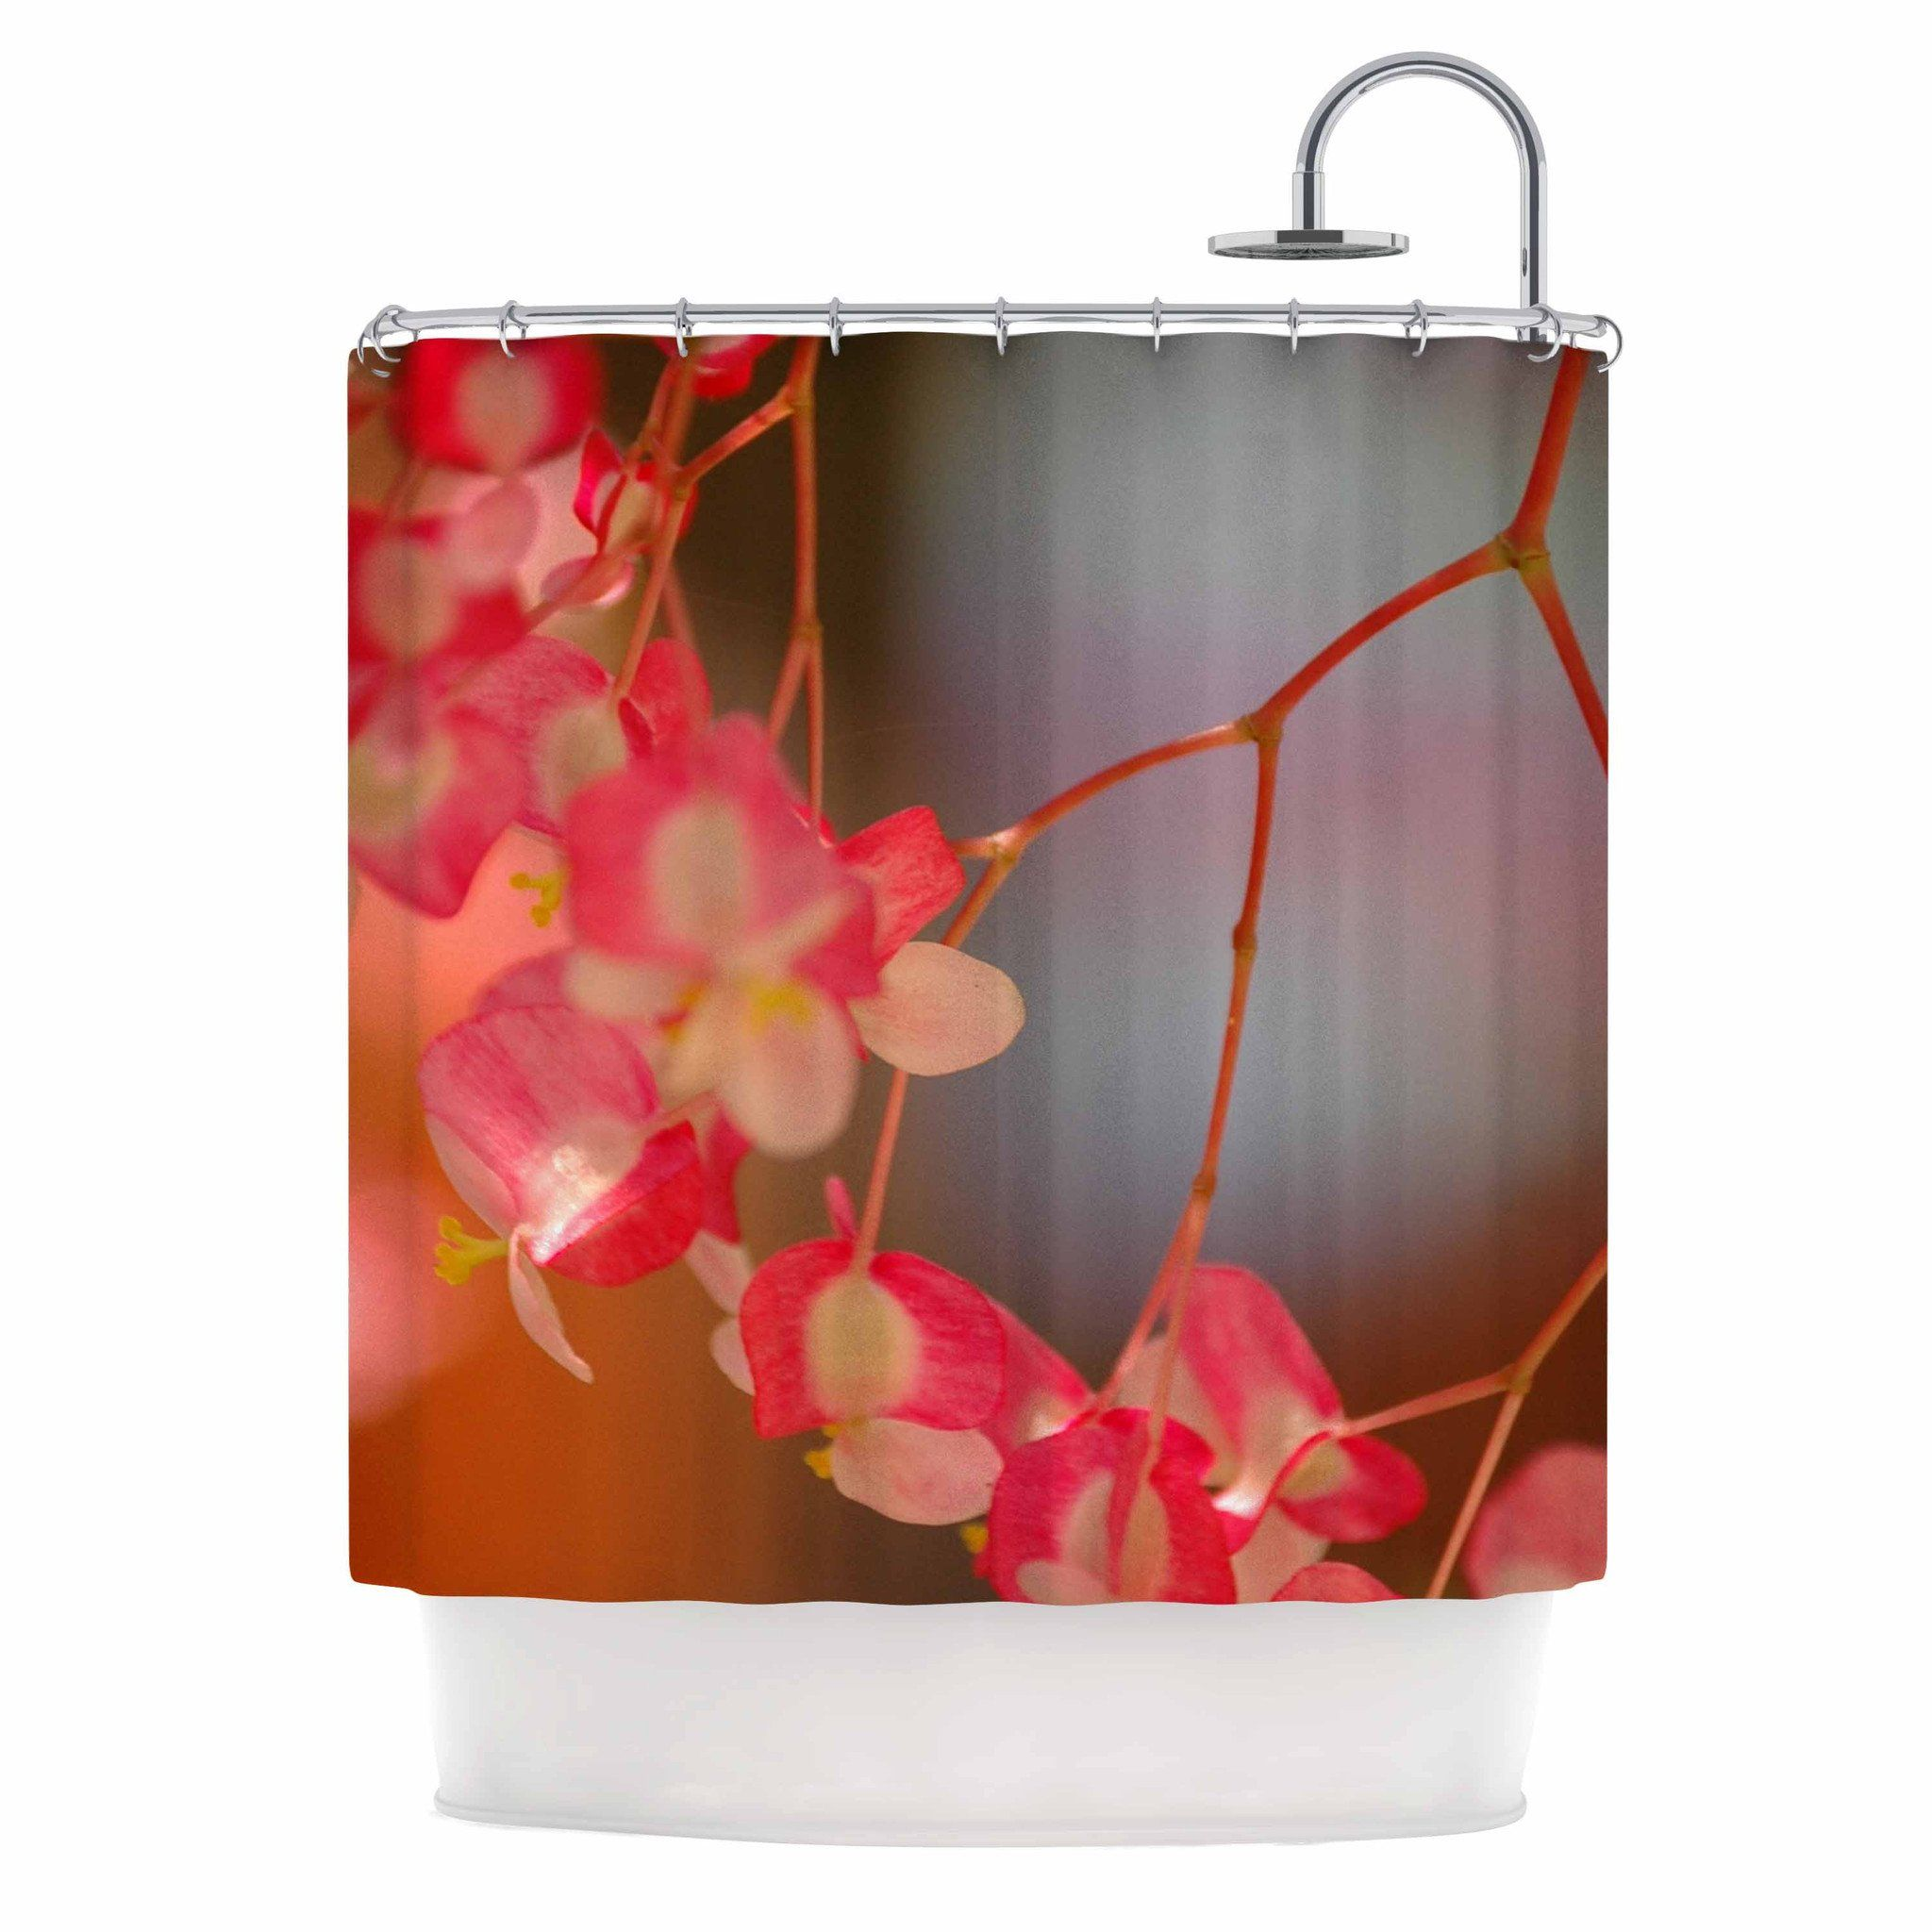 NL Designs Hanging Flowers Pink Floral Shower Curtain